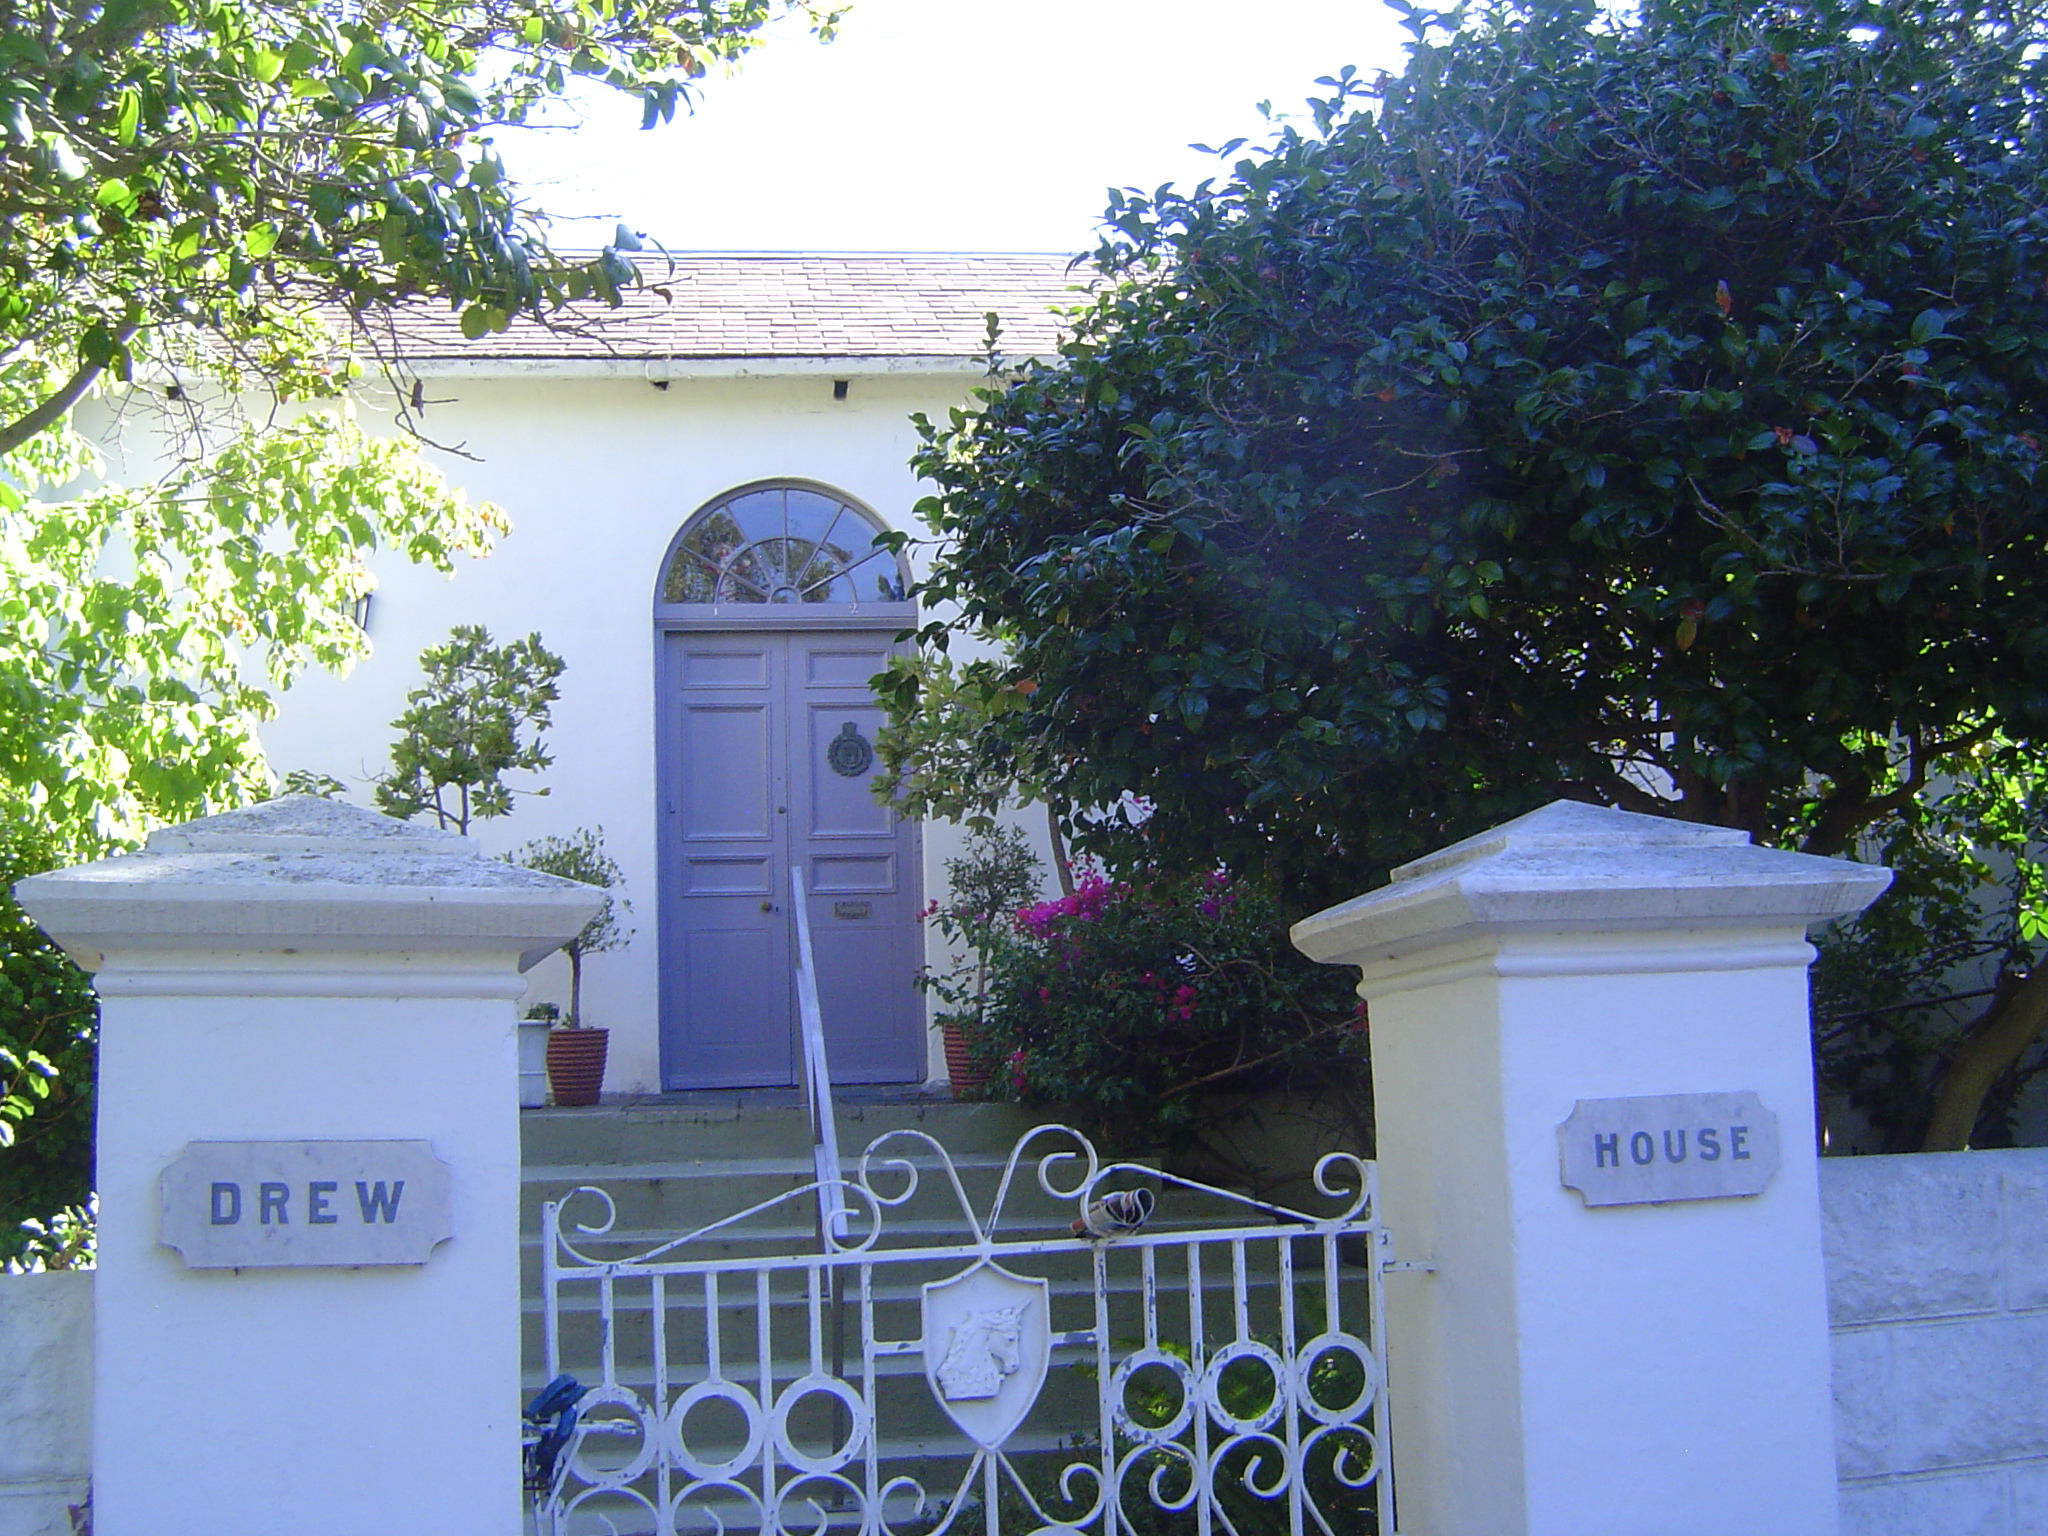 South Africa: Cape Town Suburbs